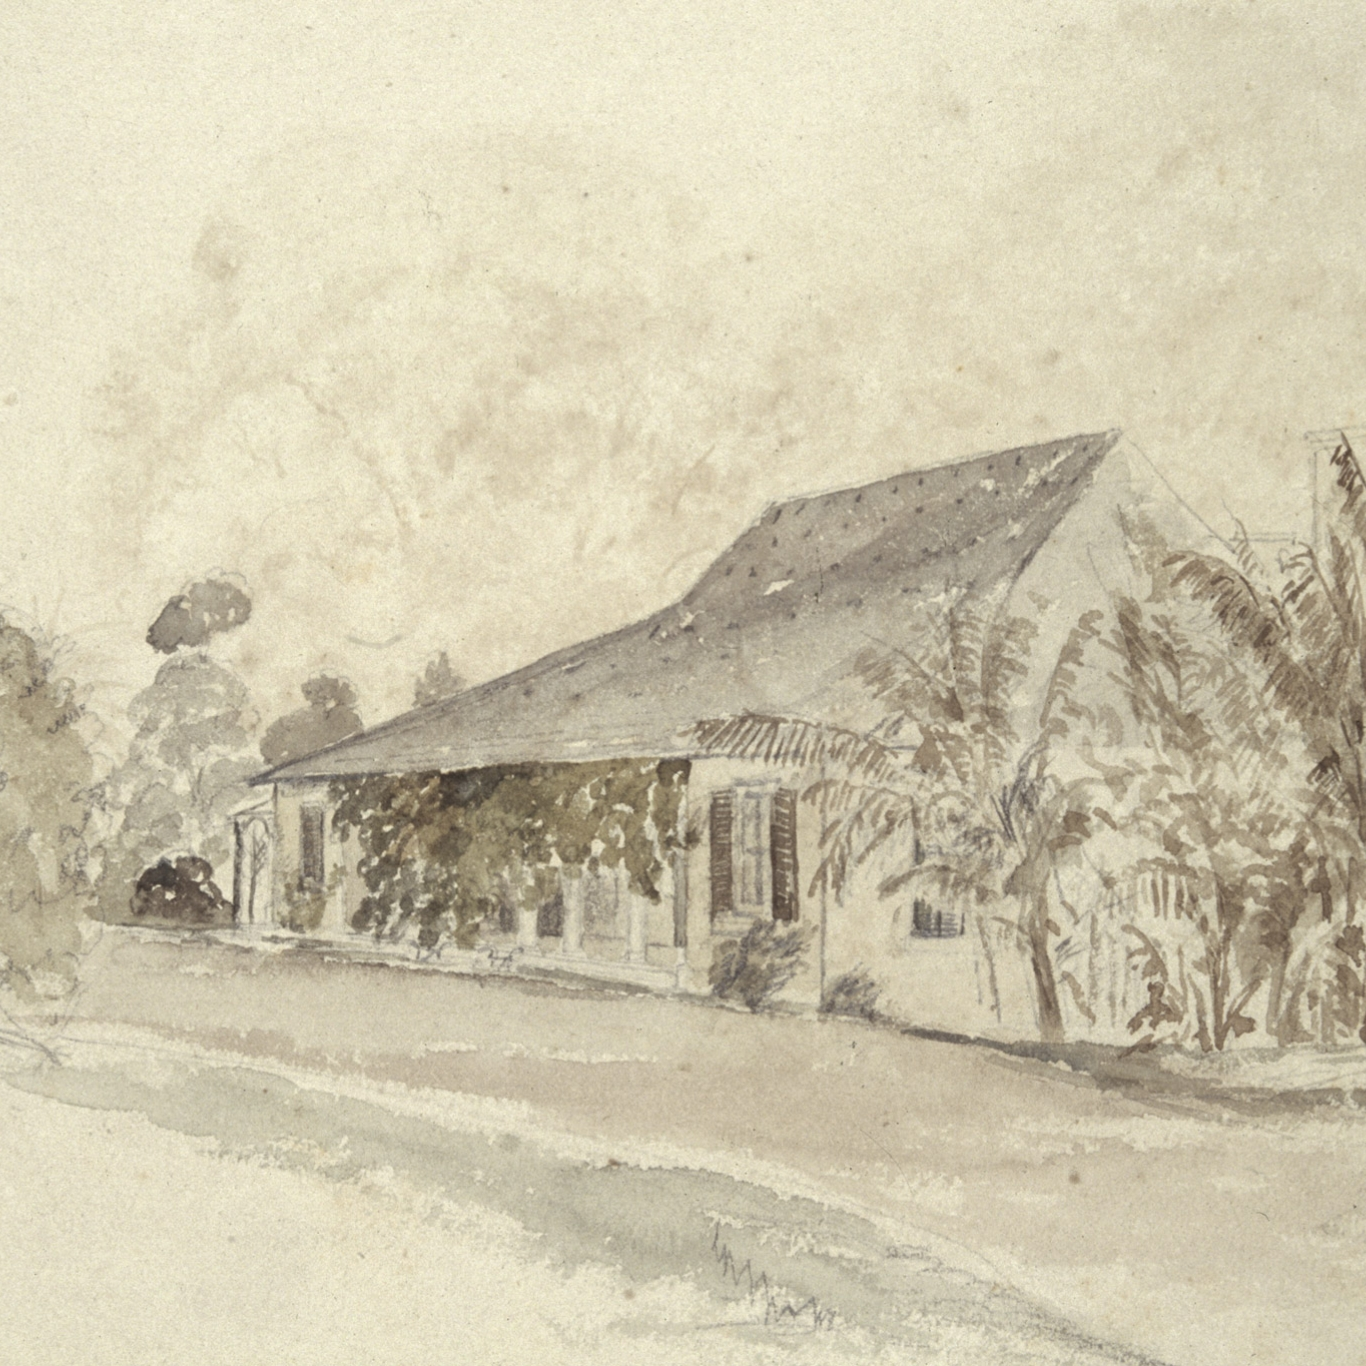 Watercolour of colonial era house with trellised verandah and trees.